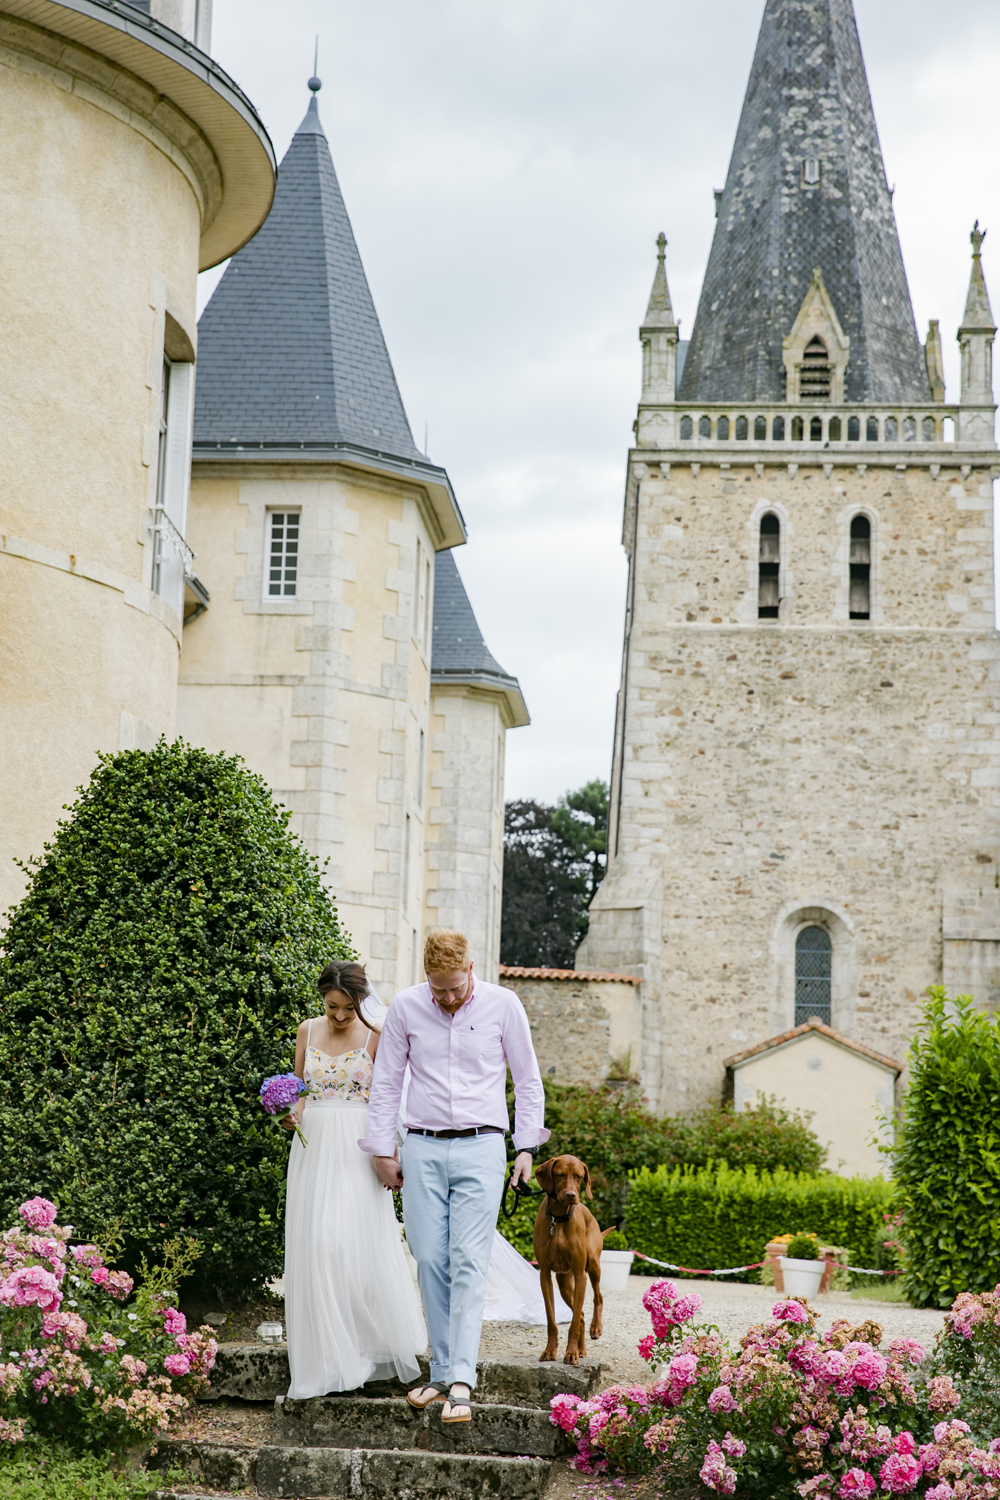 destination+wedding+chateau+de+la+bergeliere+la+flocelliere+2.jpeg